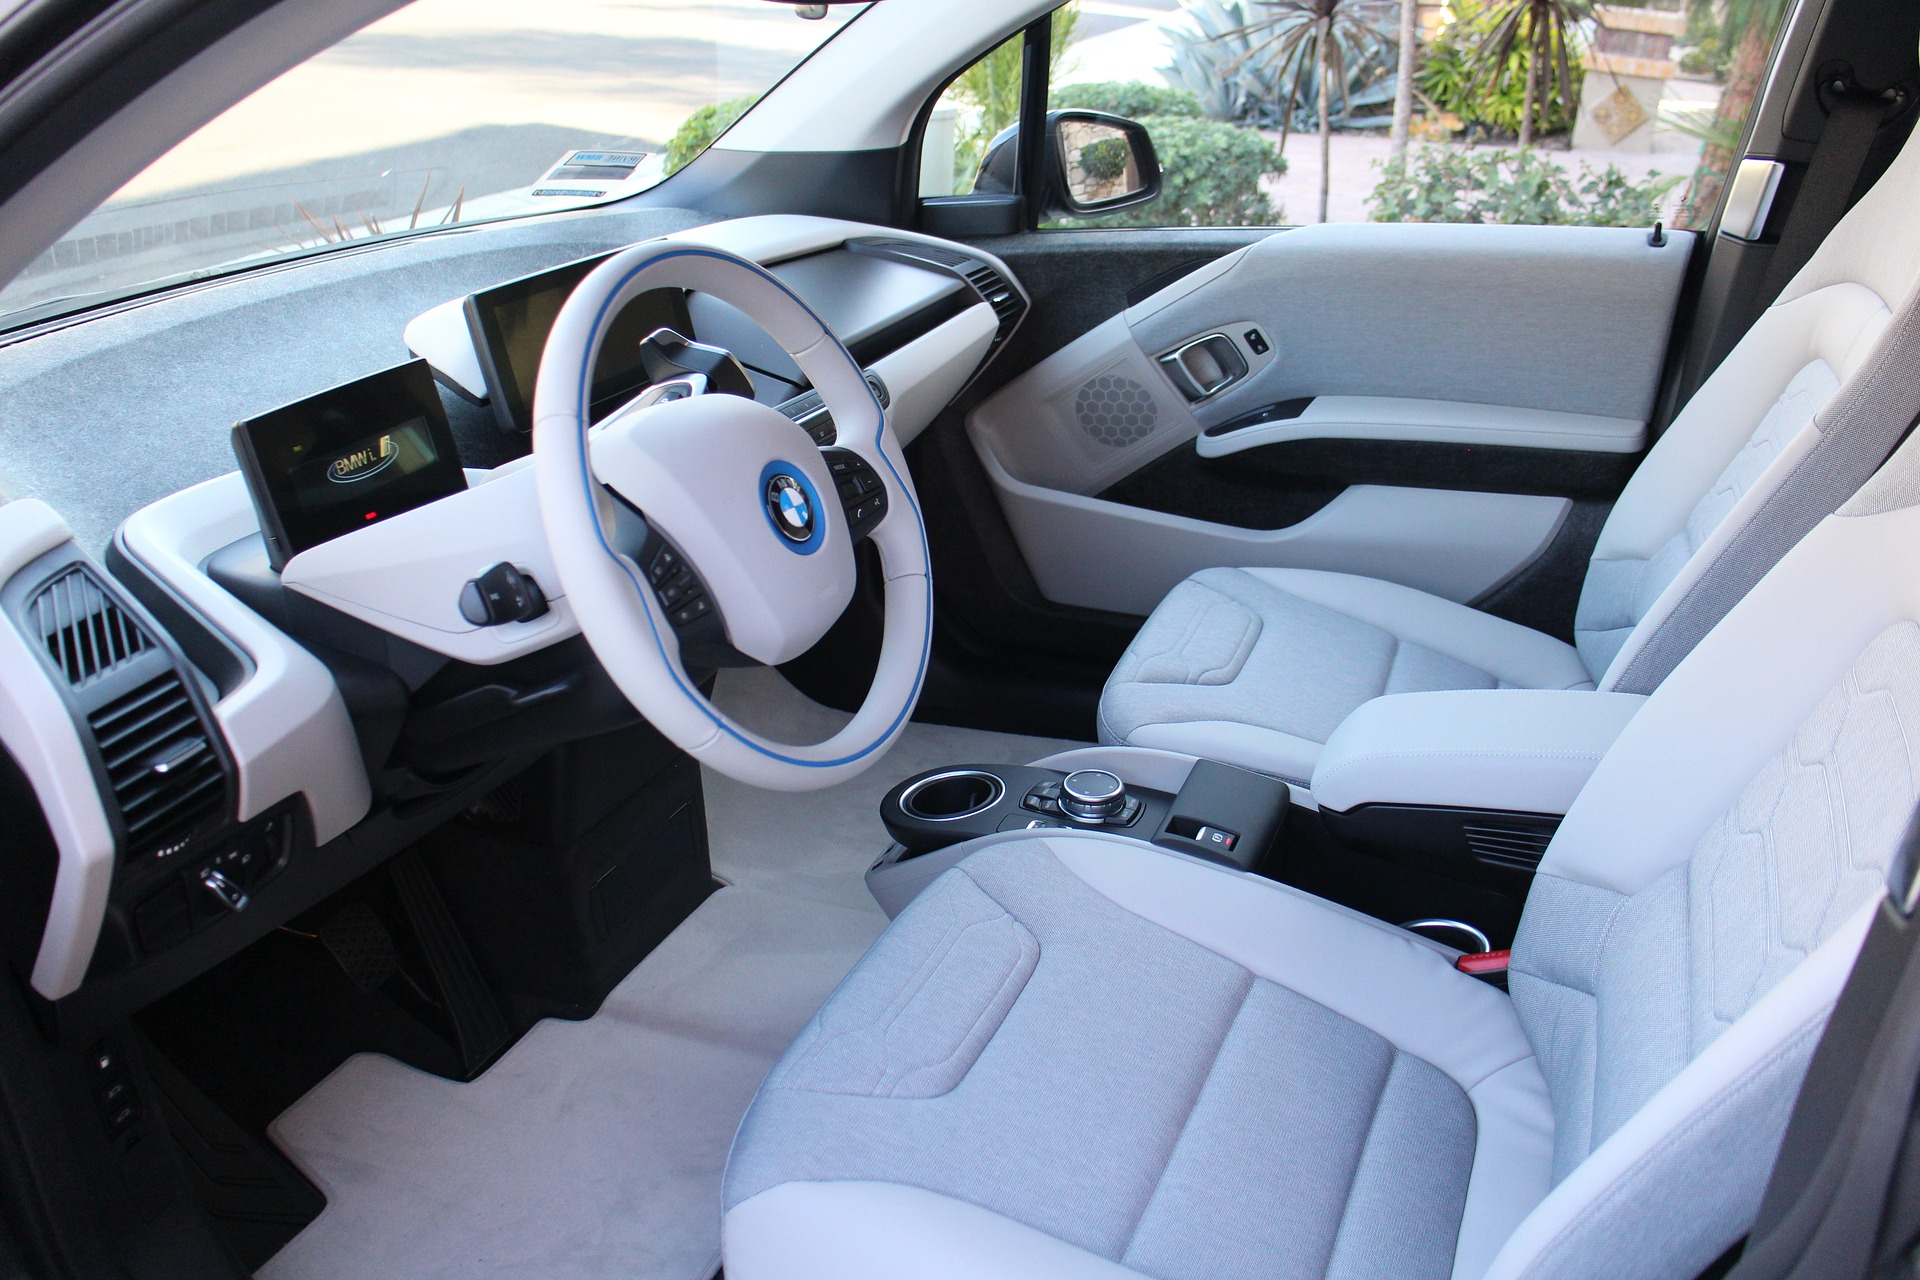 Interior Detailing of White BMW